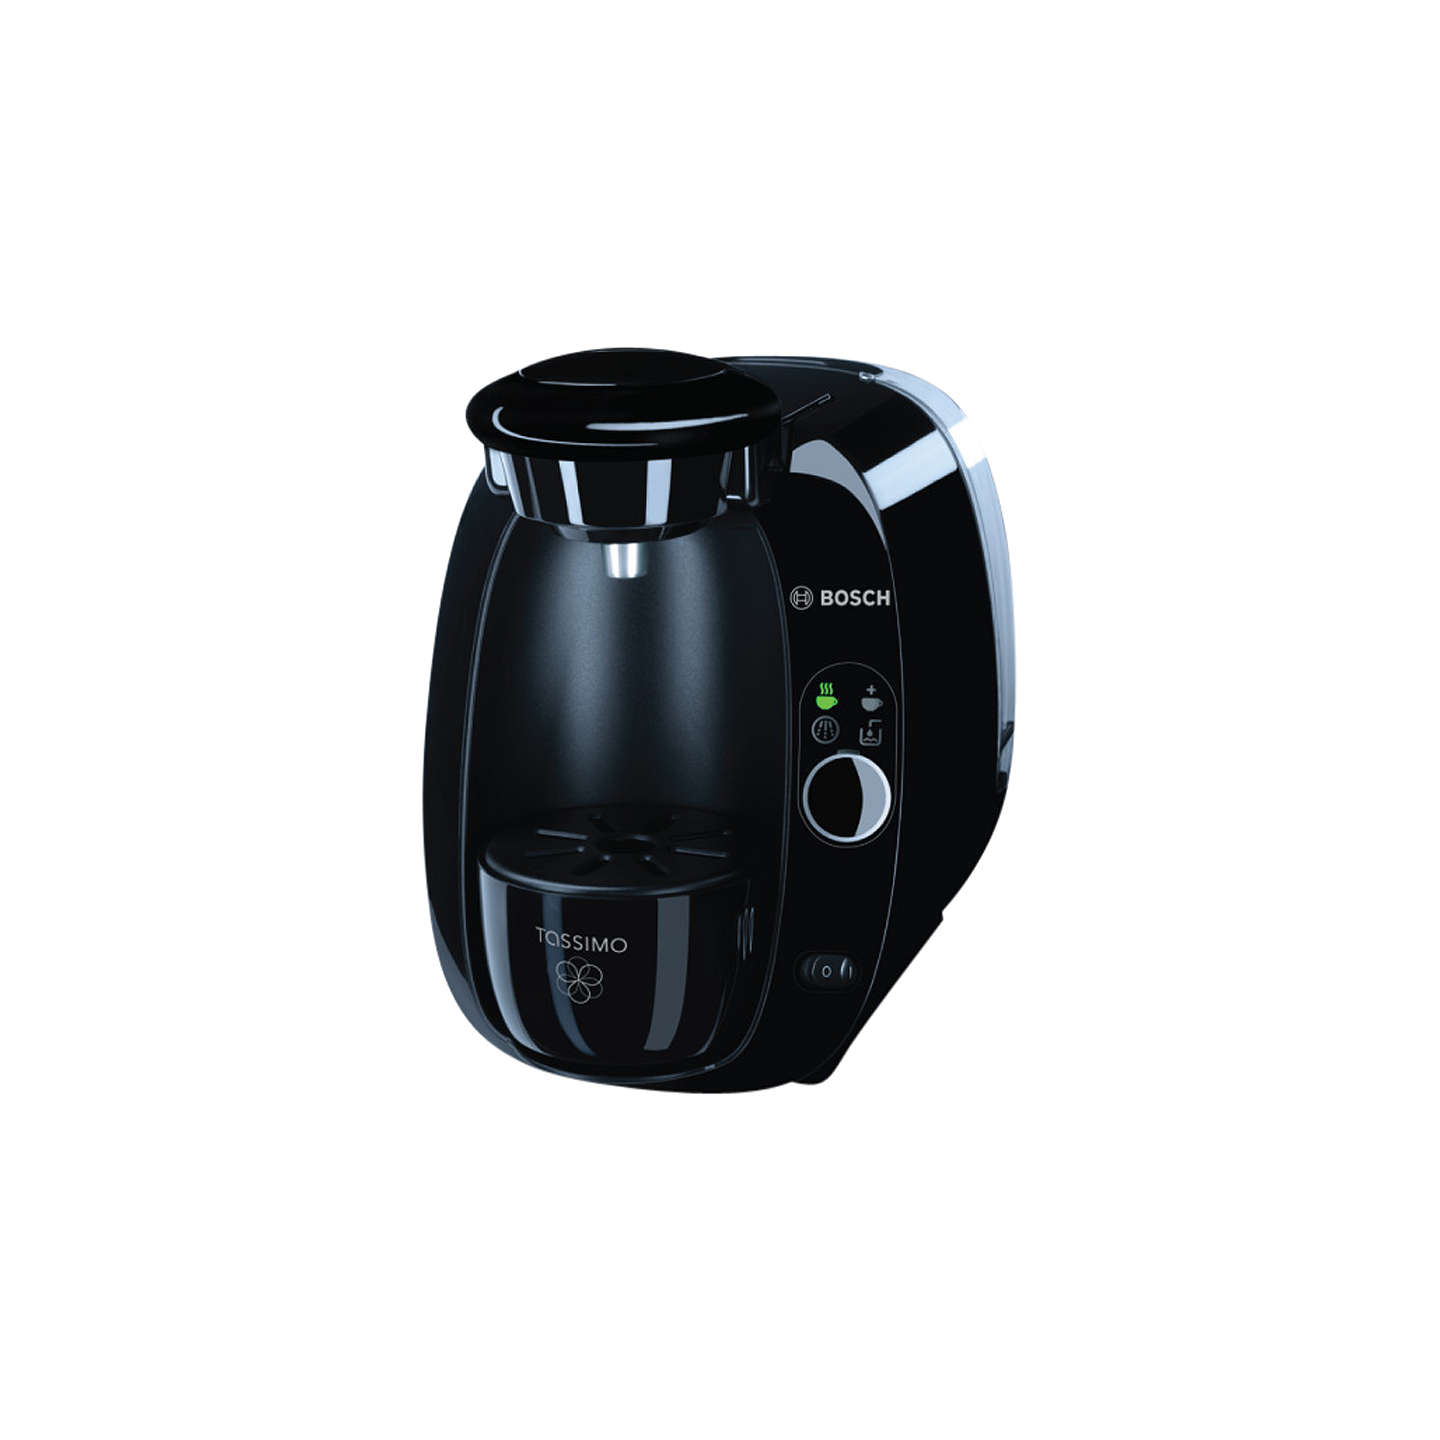 tassimo amia coffee machine by bosch black at john lewis. Black Bedroom Furniture Sets. Home Design Ideas